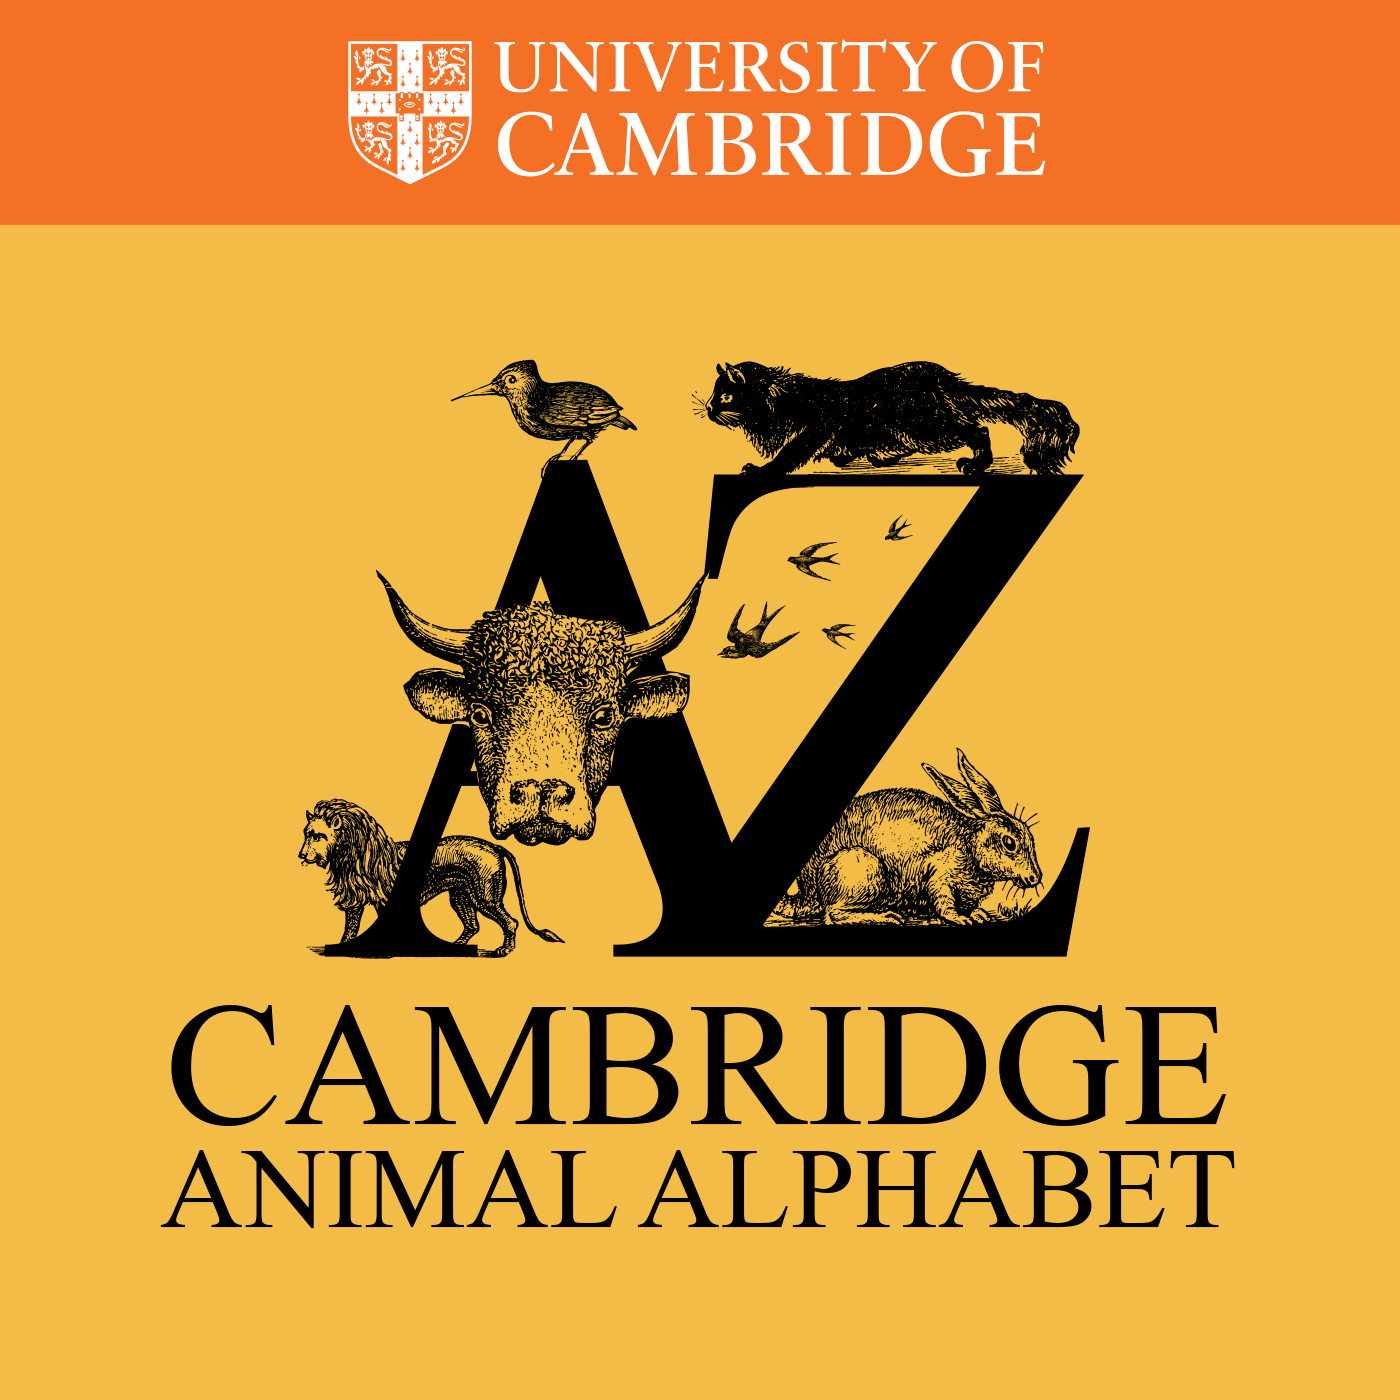 The Cambridge Animal Alphabet series's image